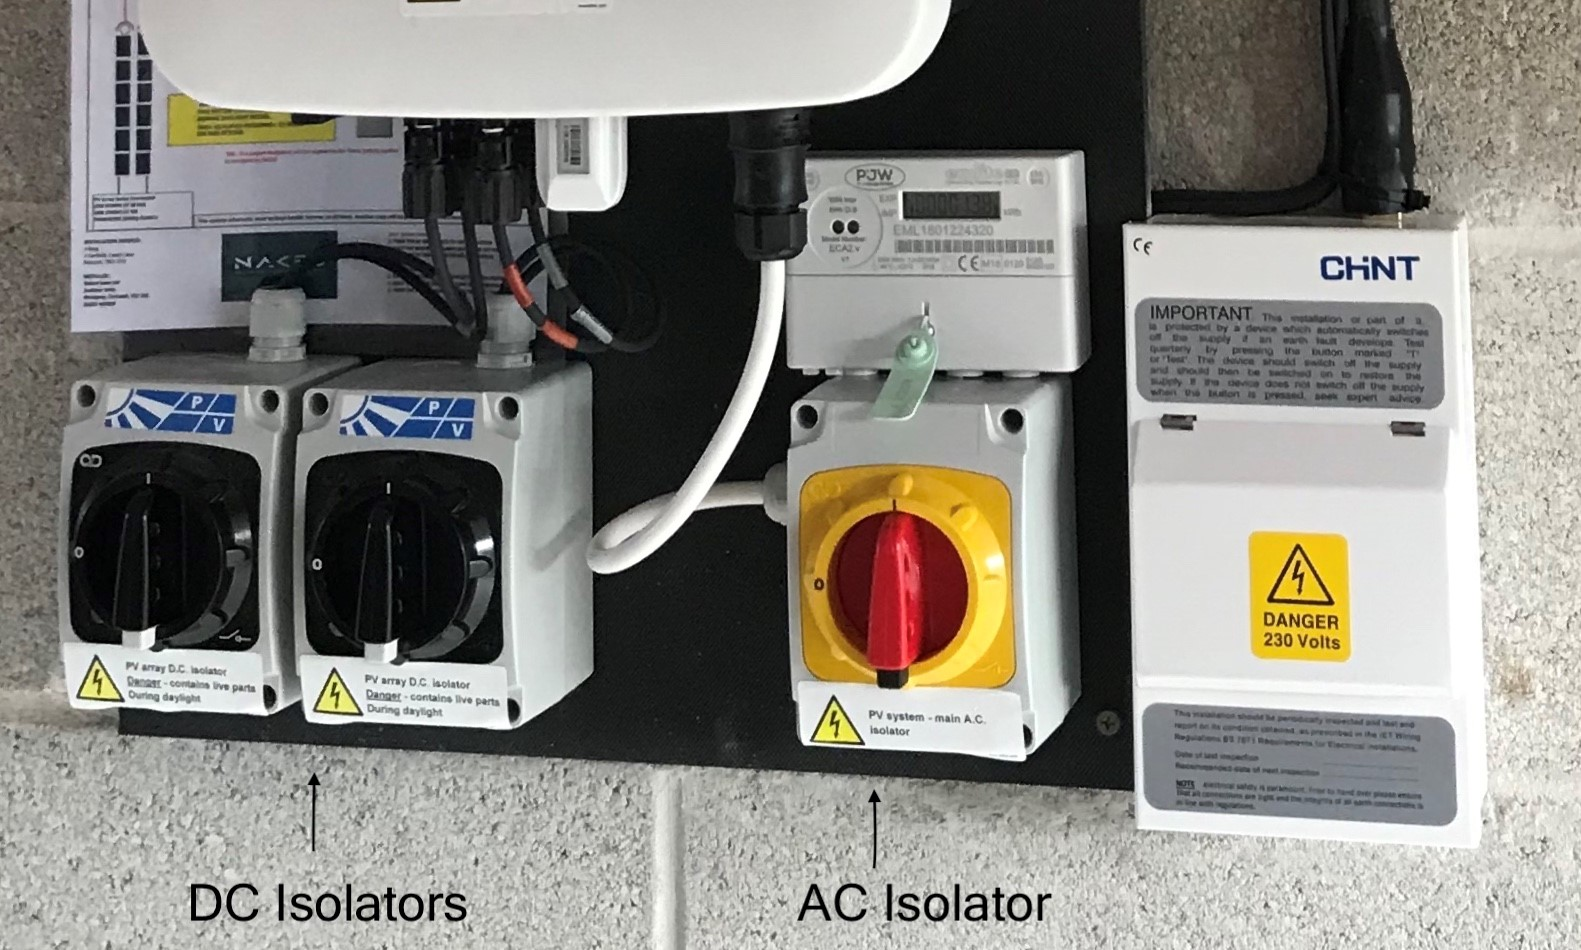 dc-ac-isolators-for-solar-pv-panel-system